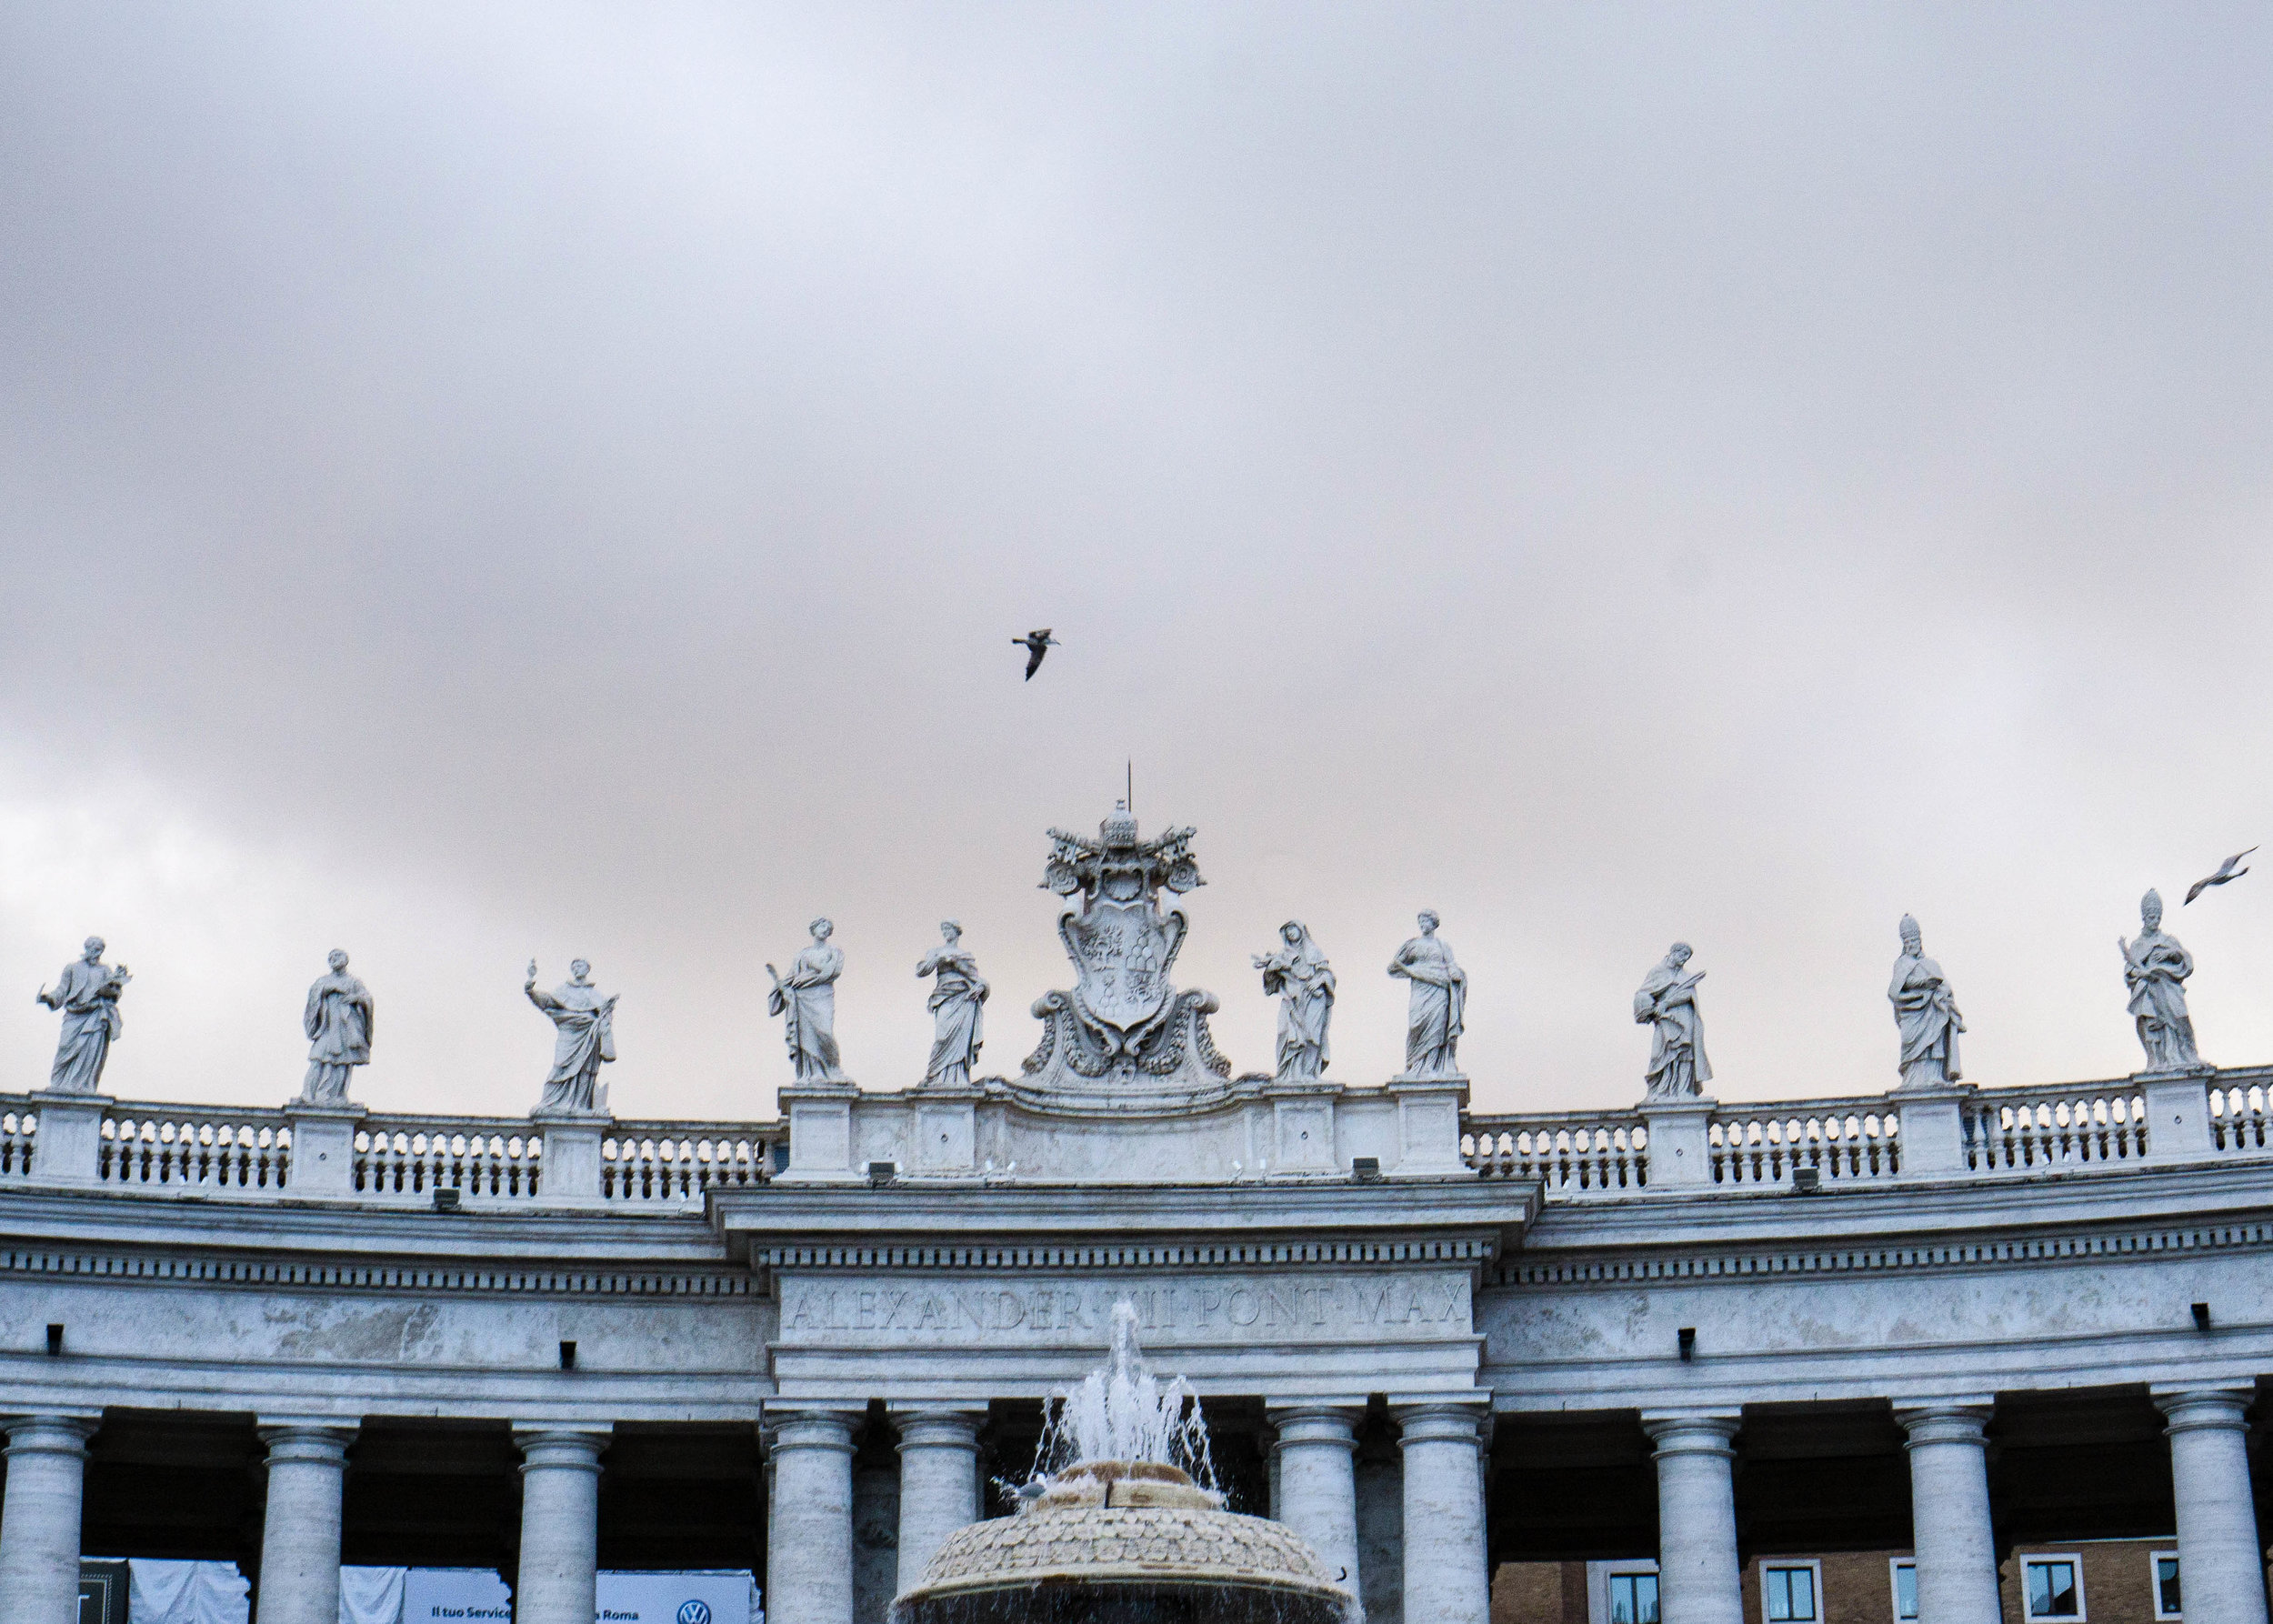 St. Peter's Square, Vatican